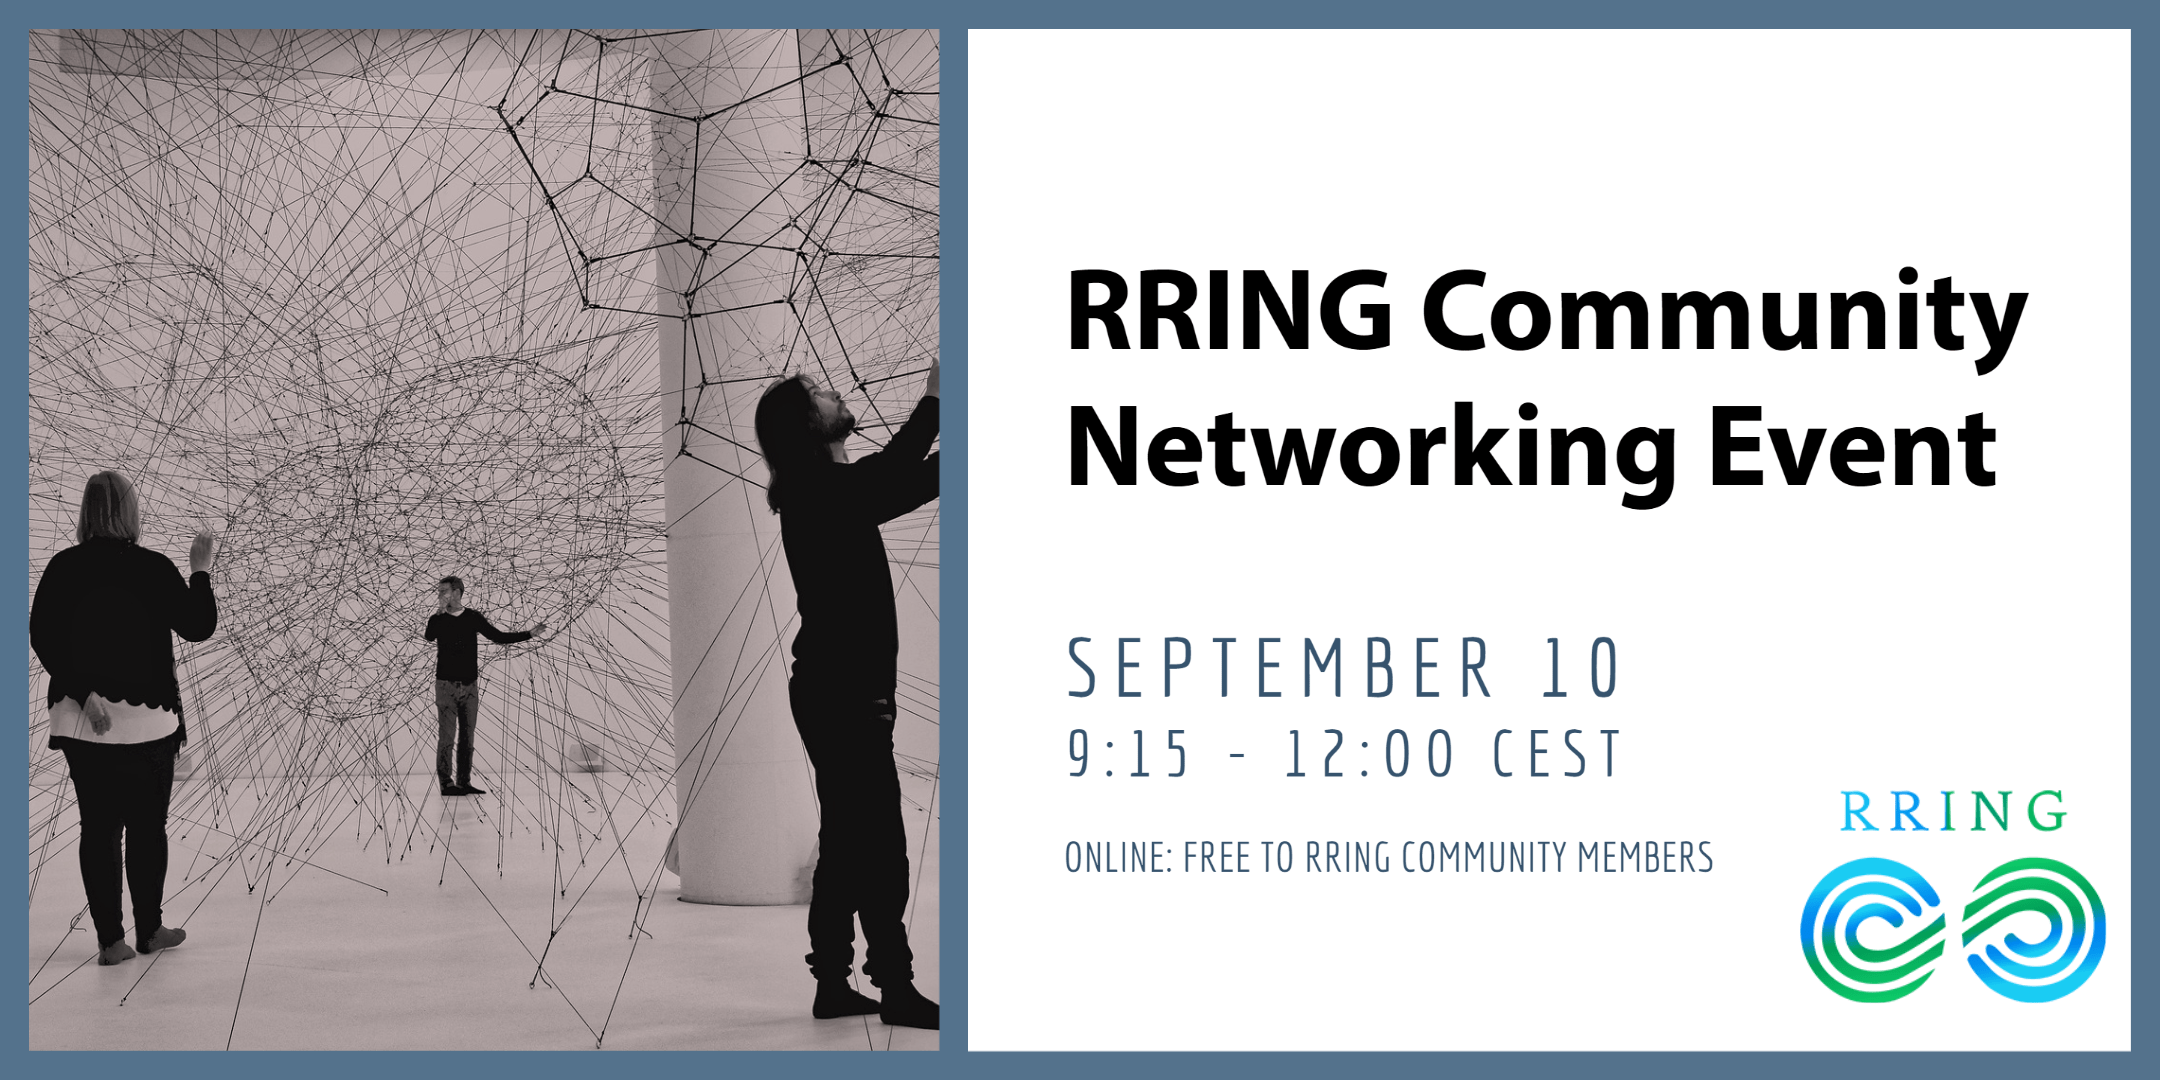 RRING to host first virtual networking event for Community members (September 10)